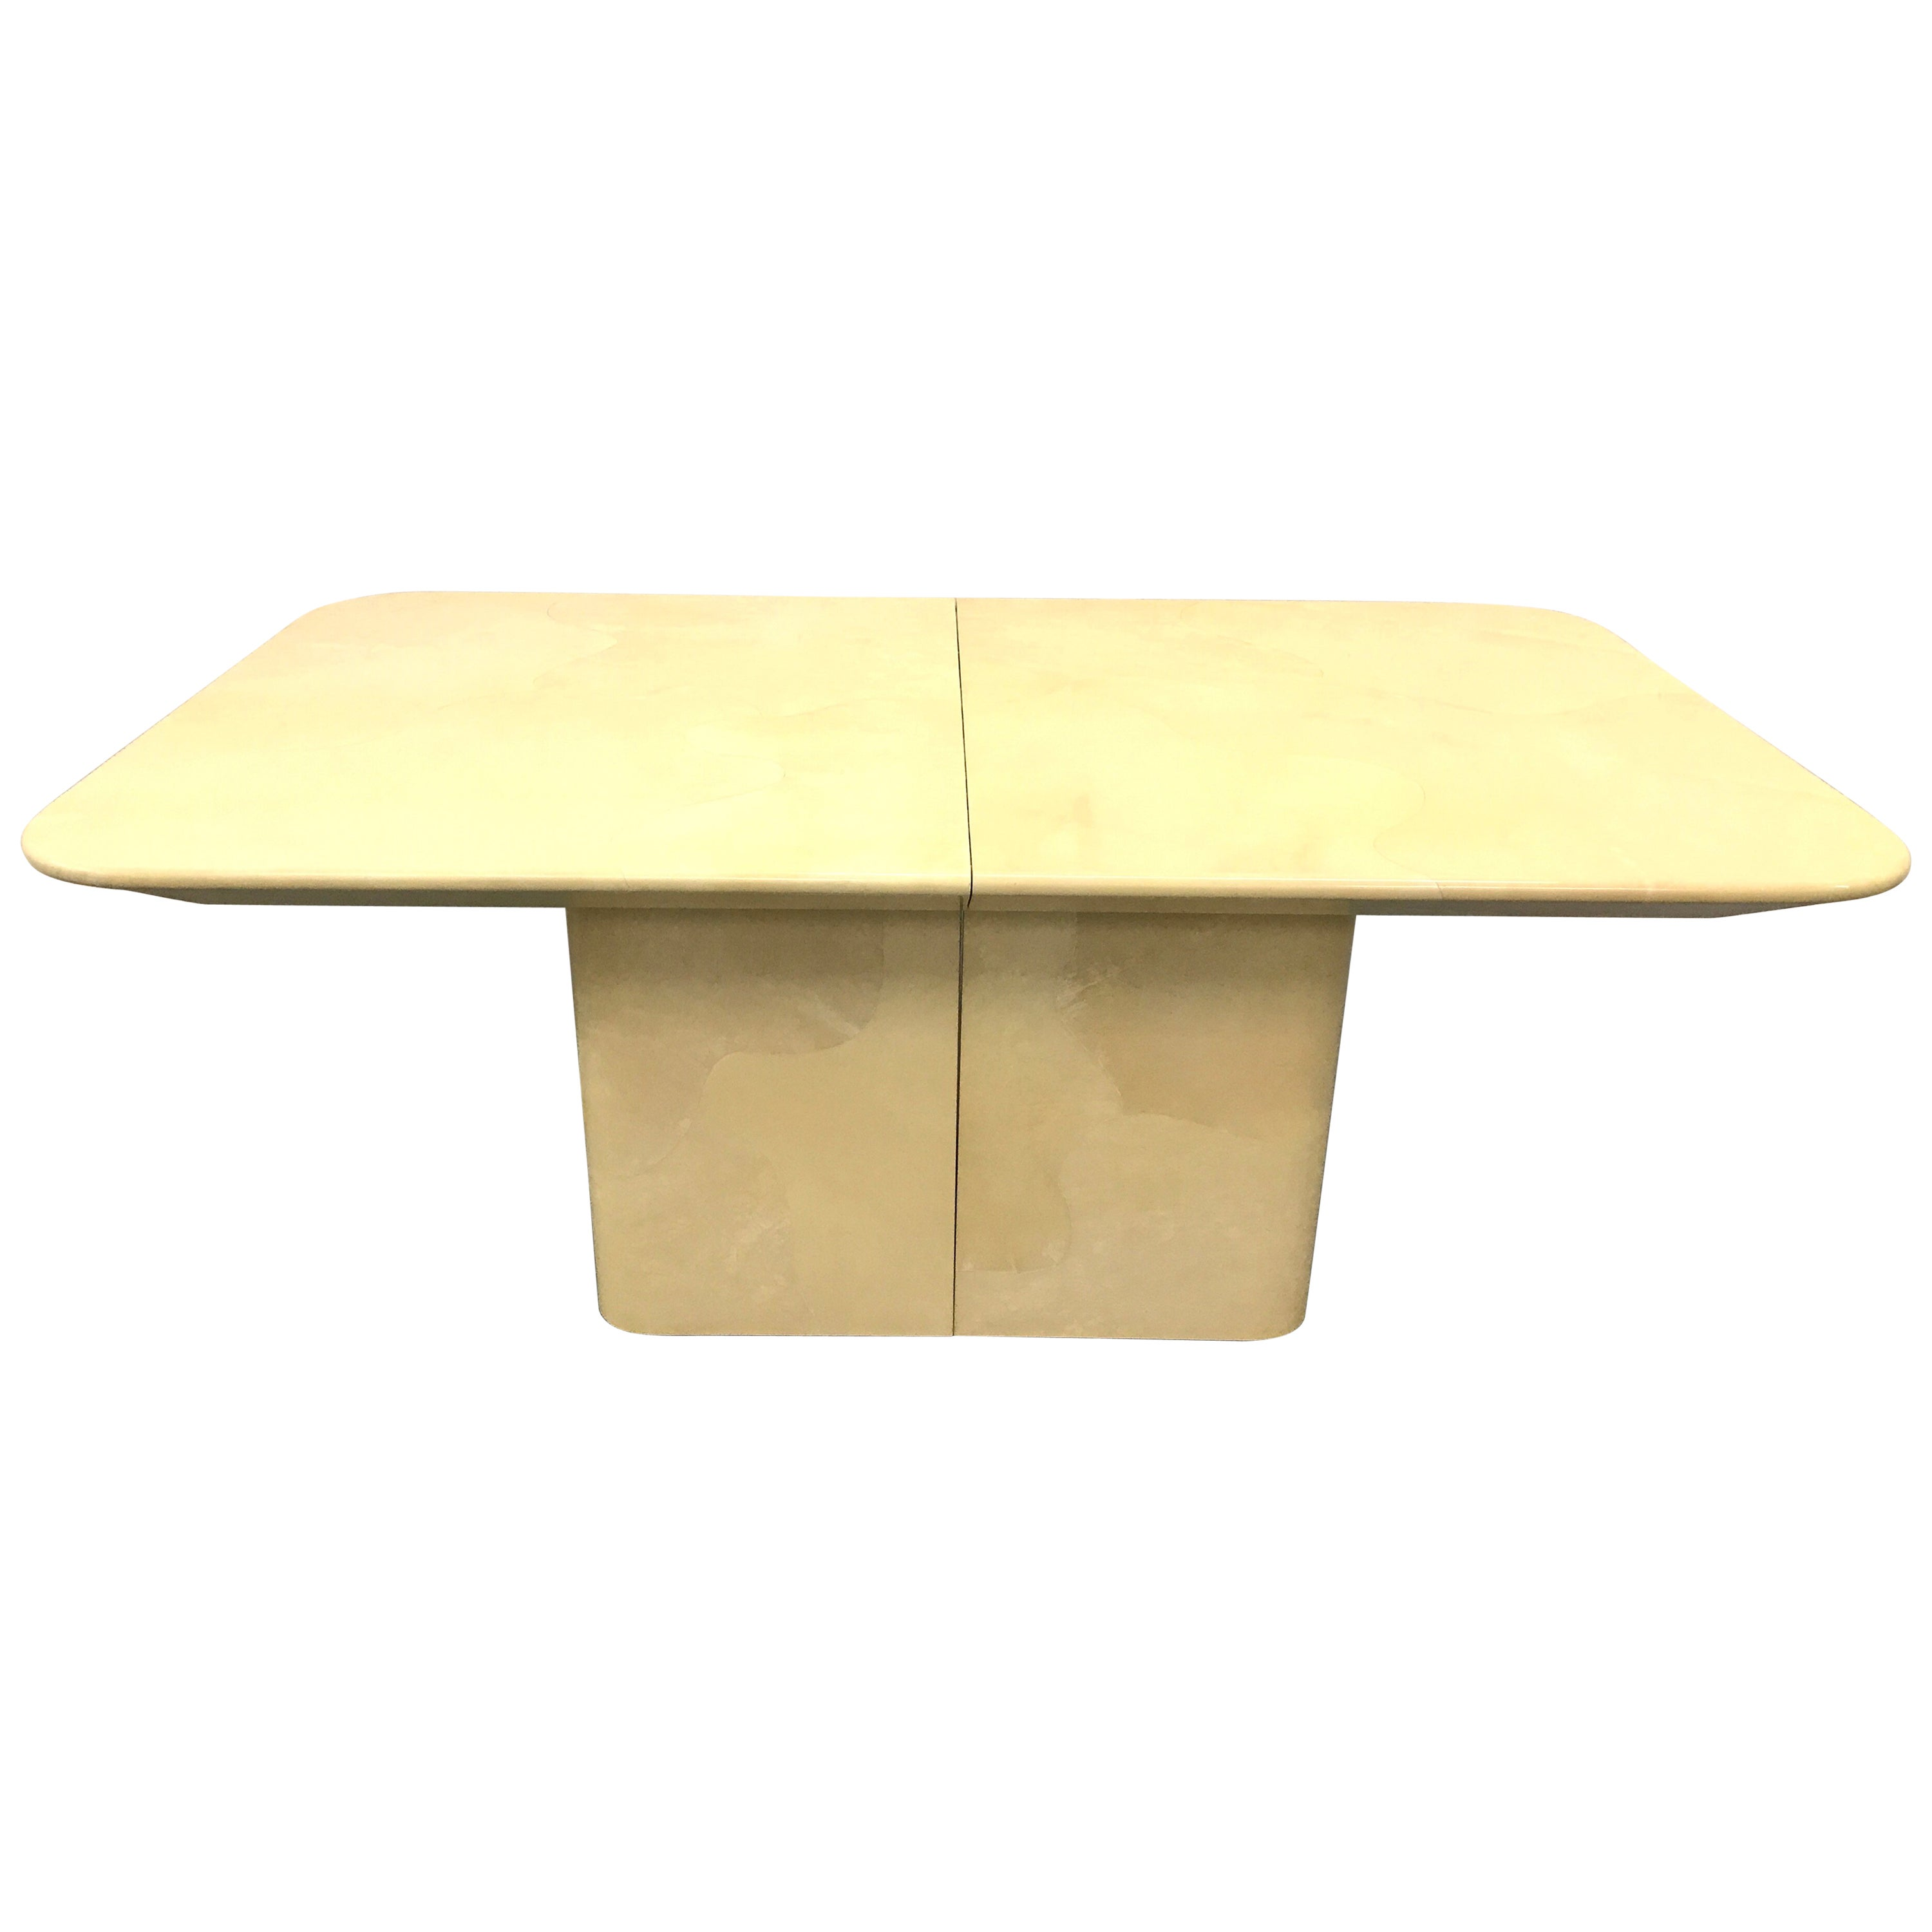 Pair Of White Lacquer Amoeba Shape Cut Out Cube Tables For